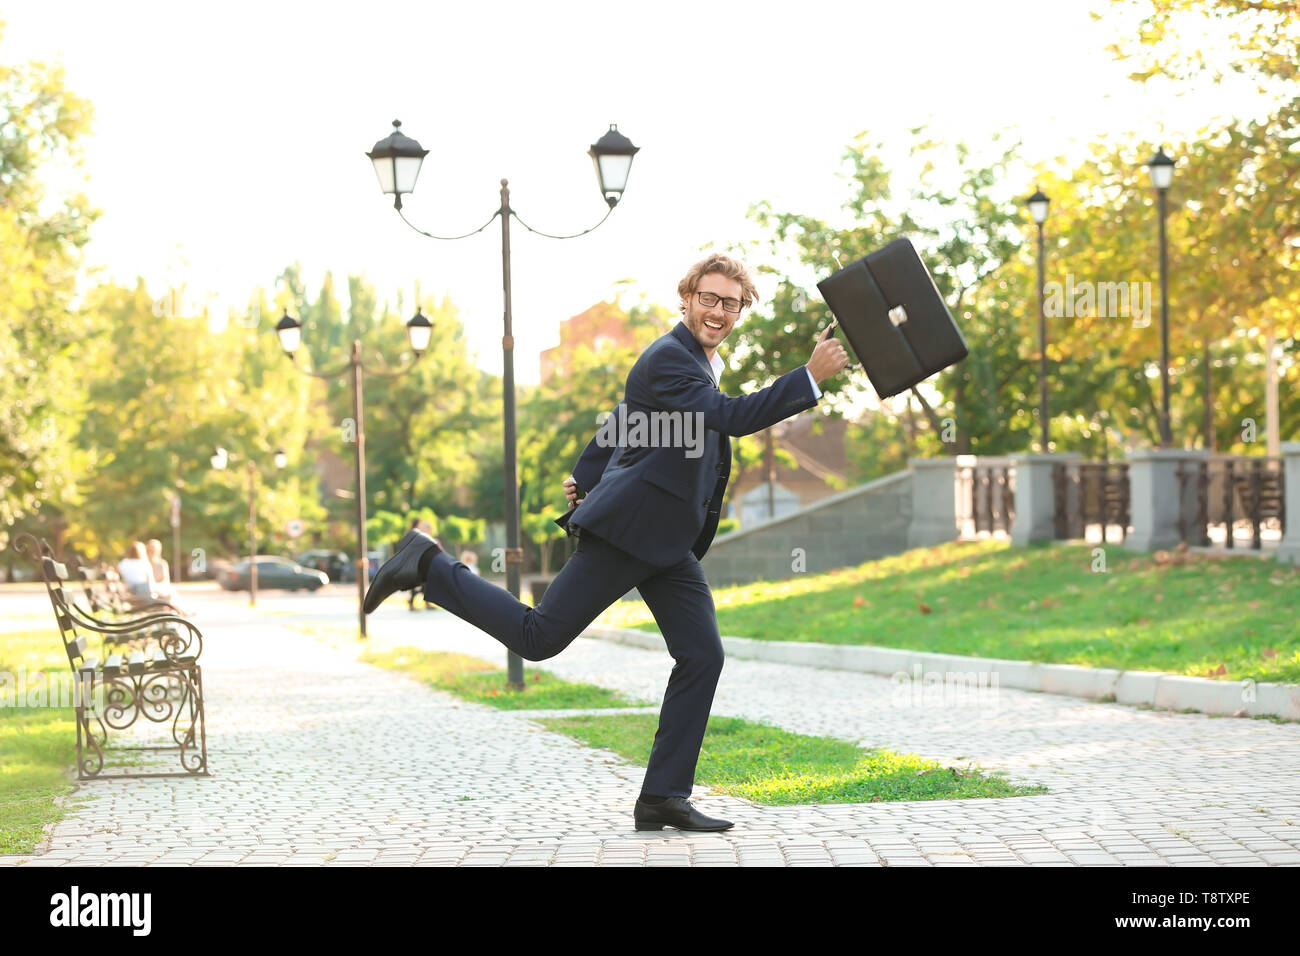 Handsome young man with briefcase running in park - Stock Image